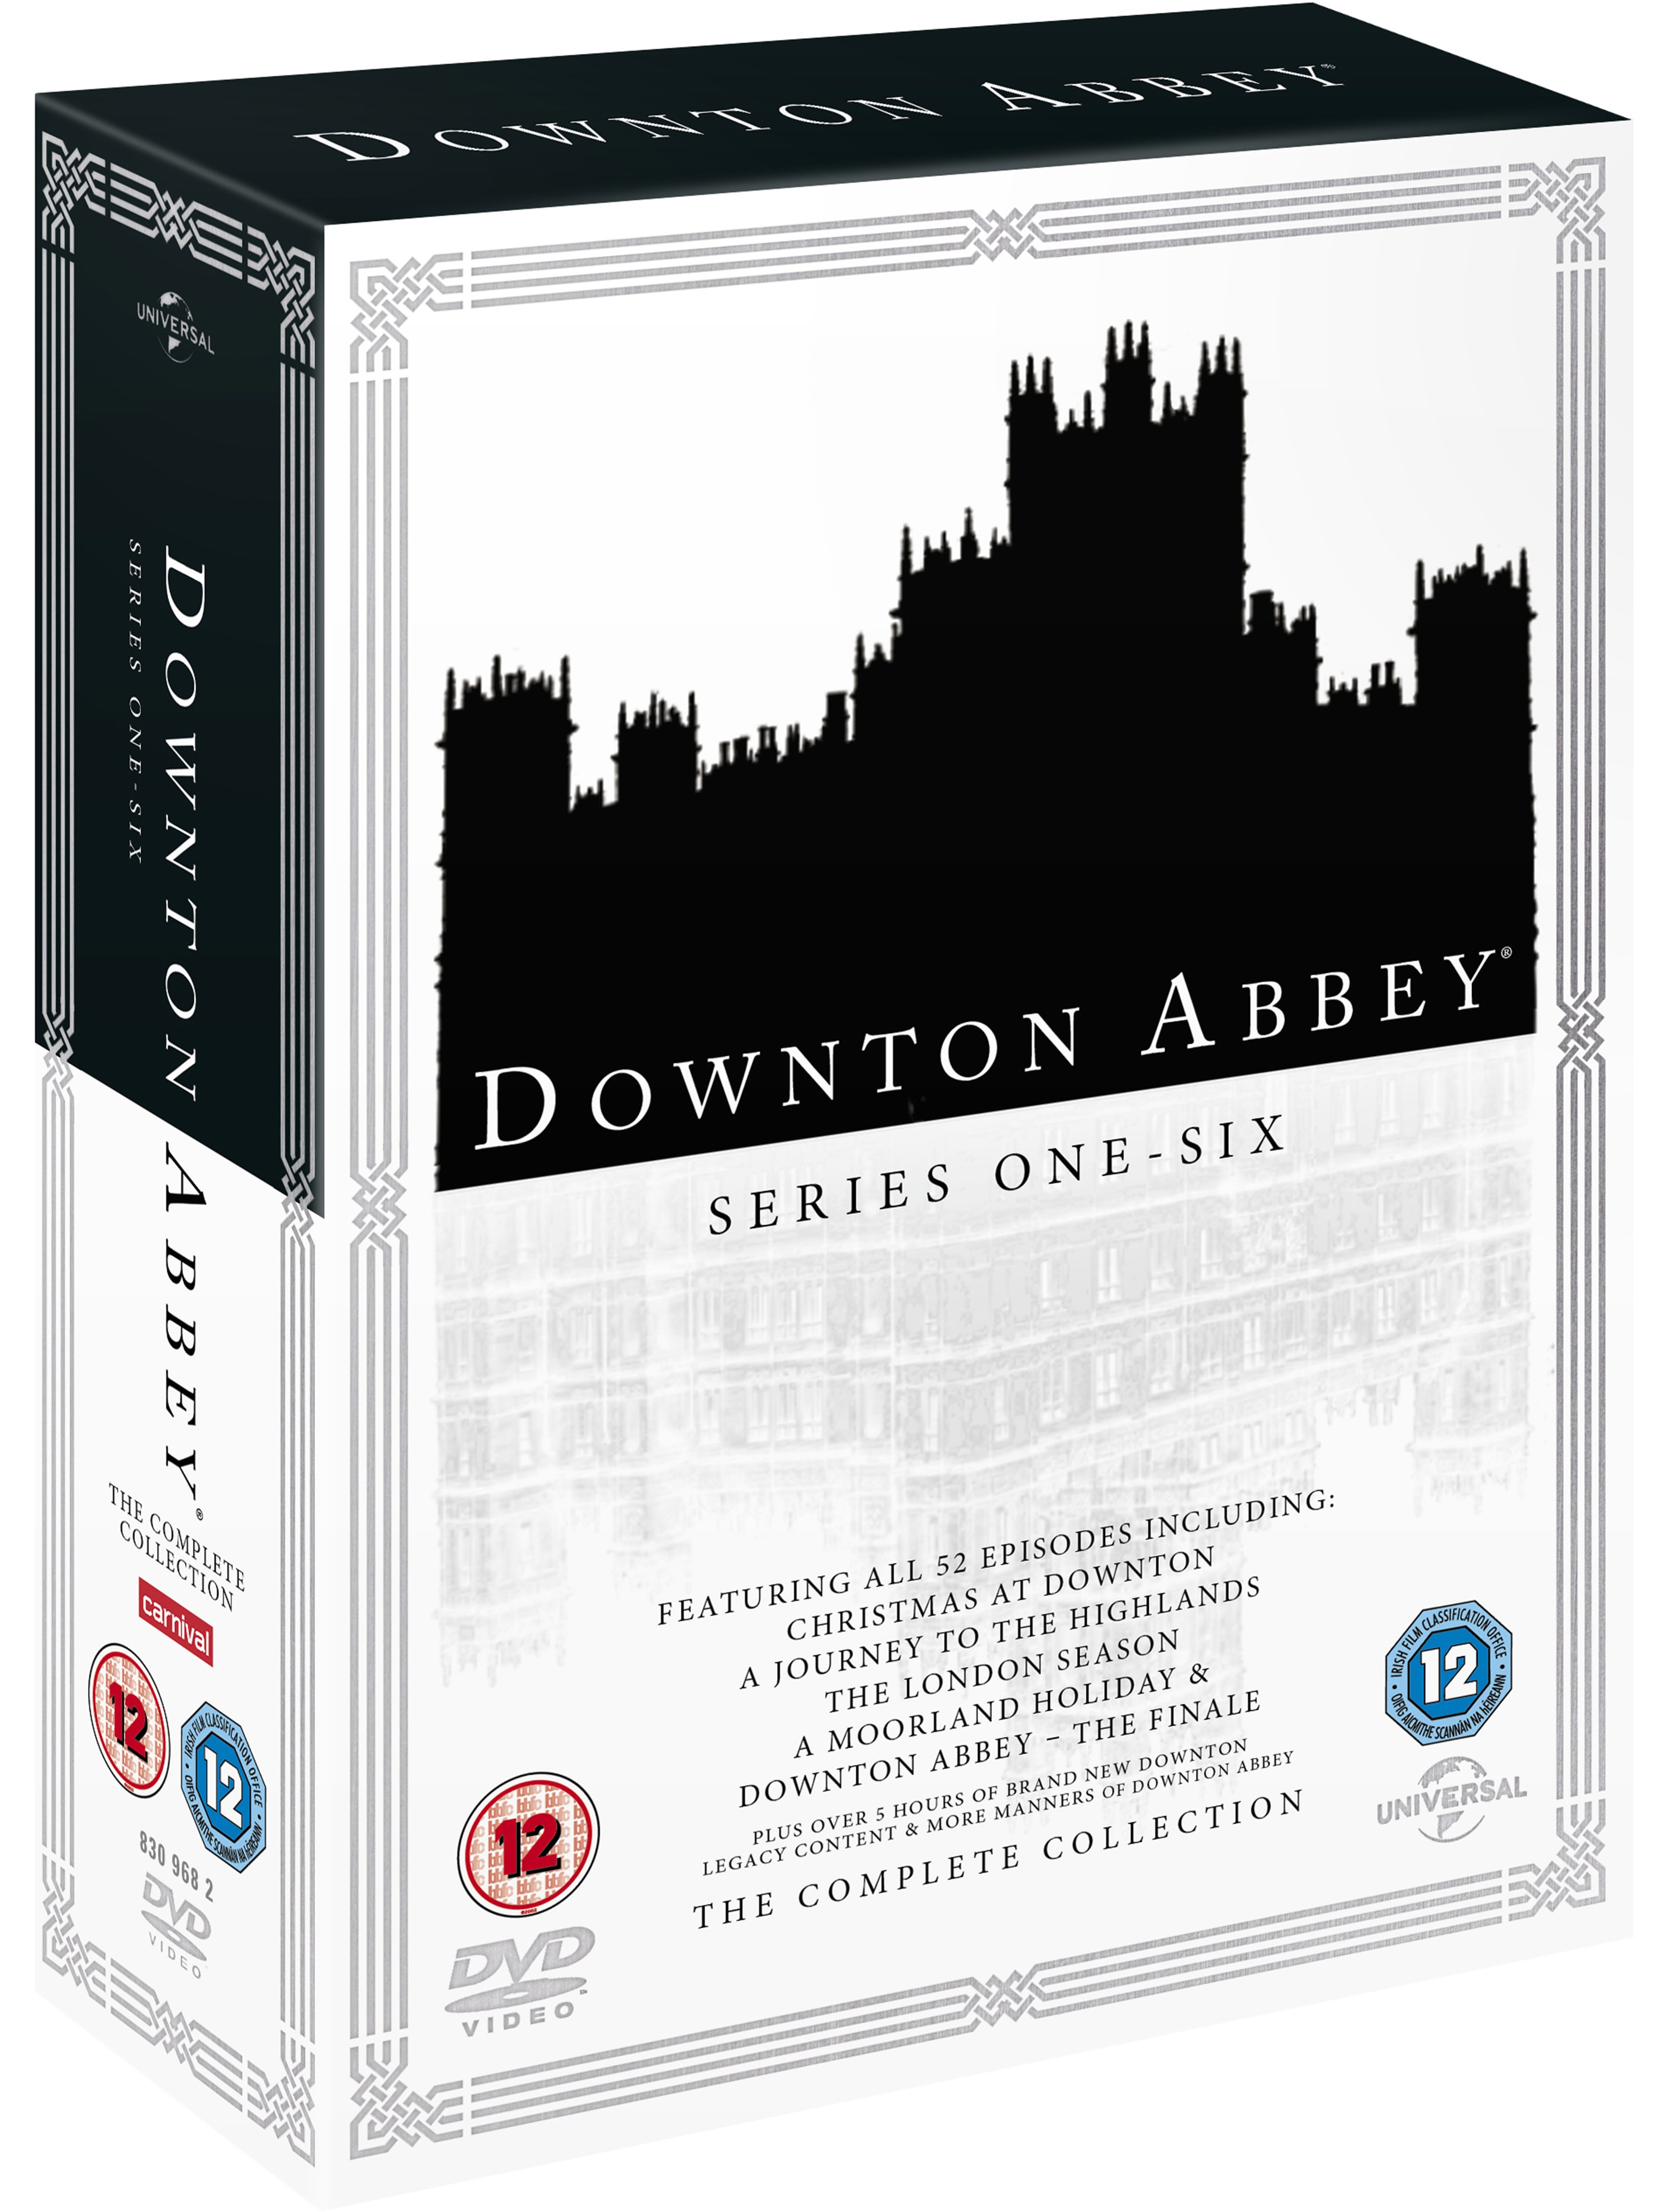 Downton Abbey: The Complete Collection - 2